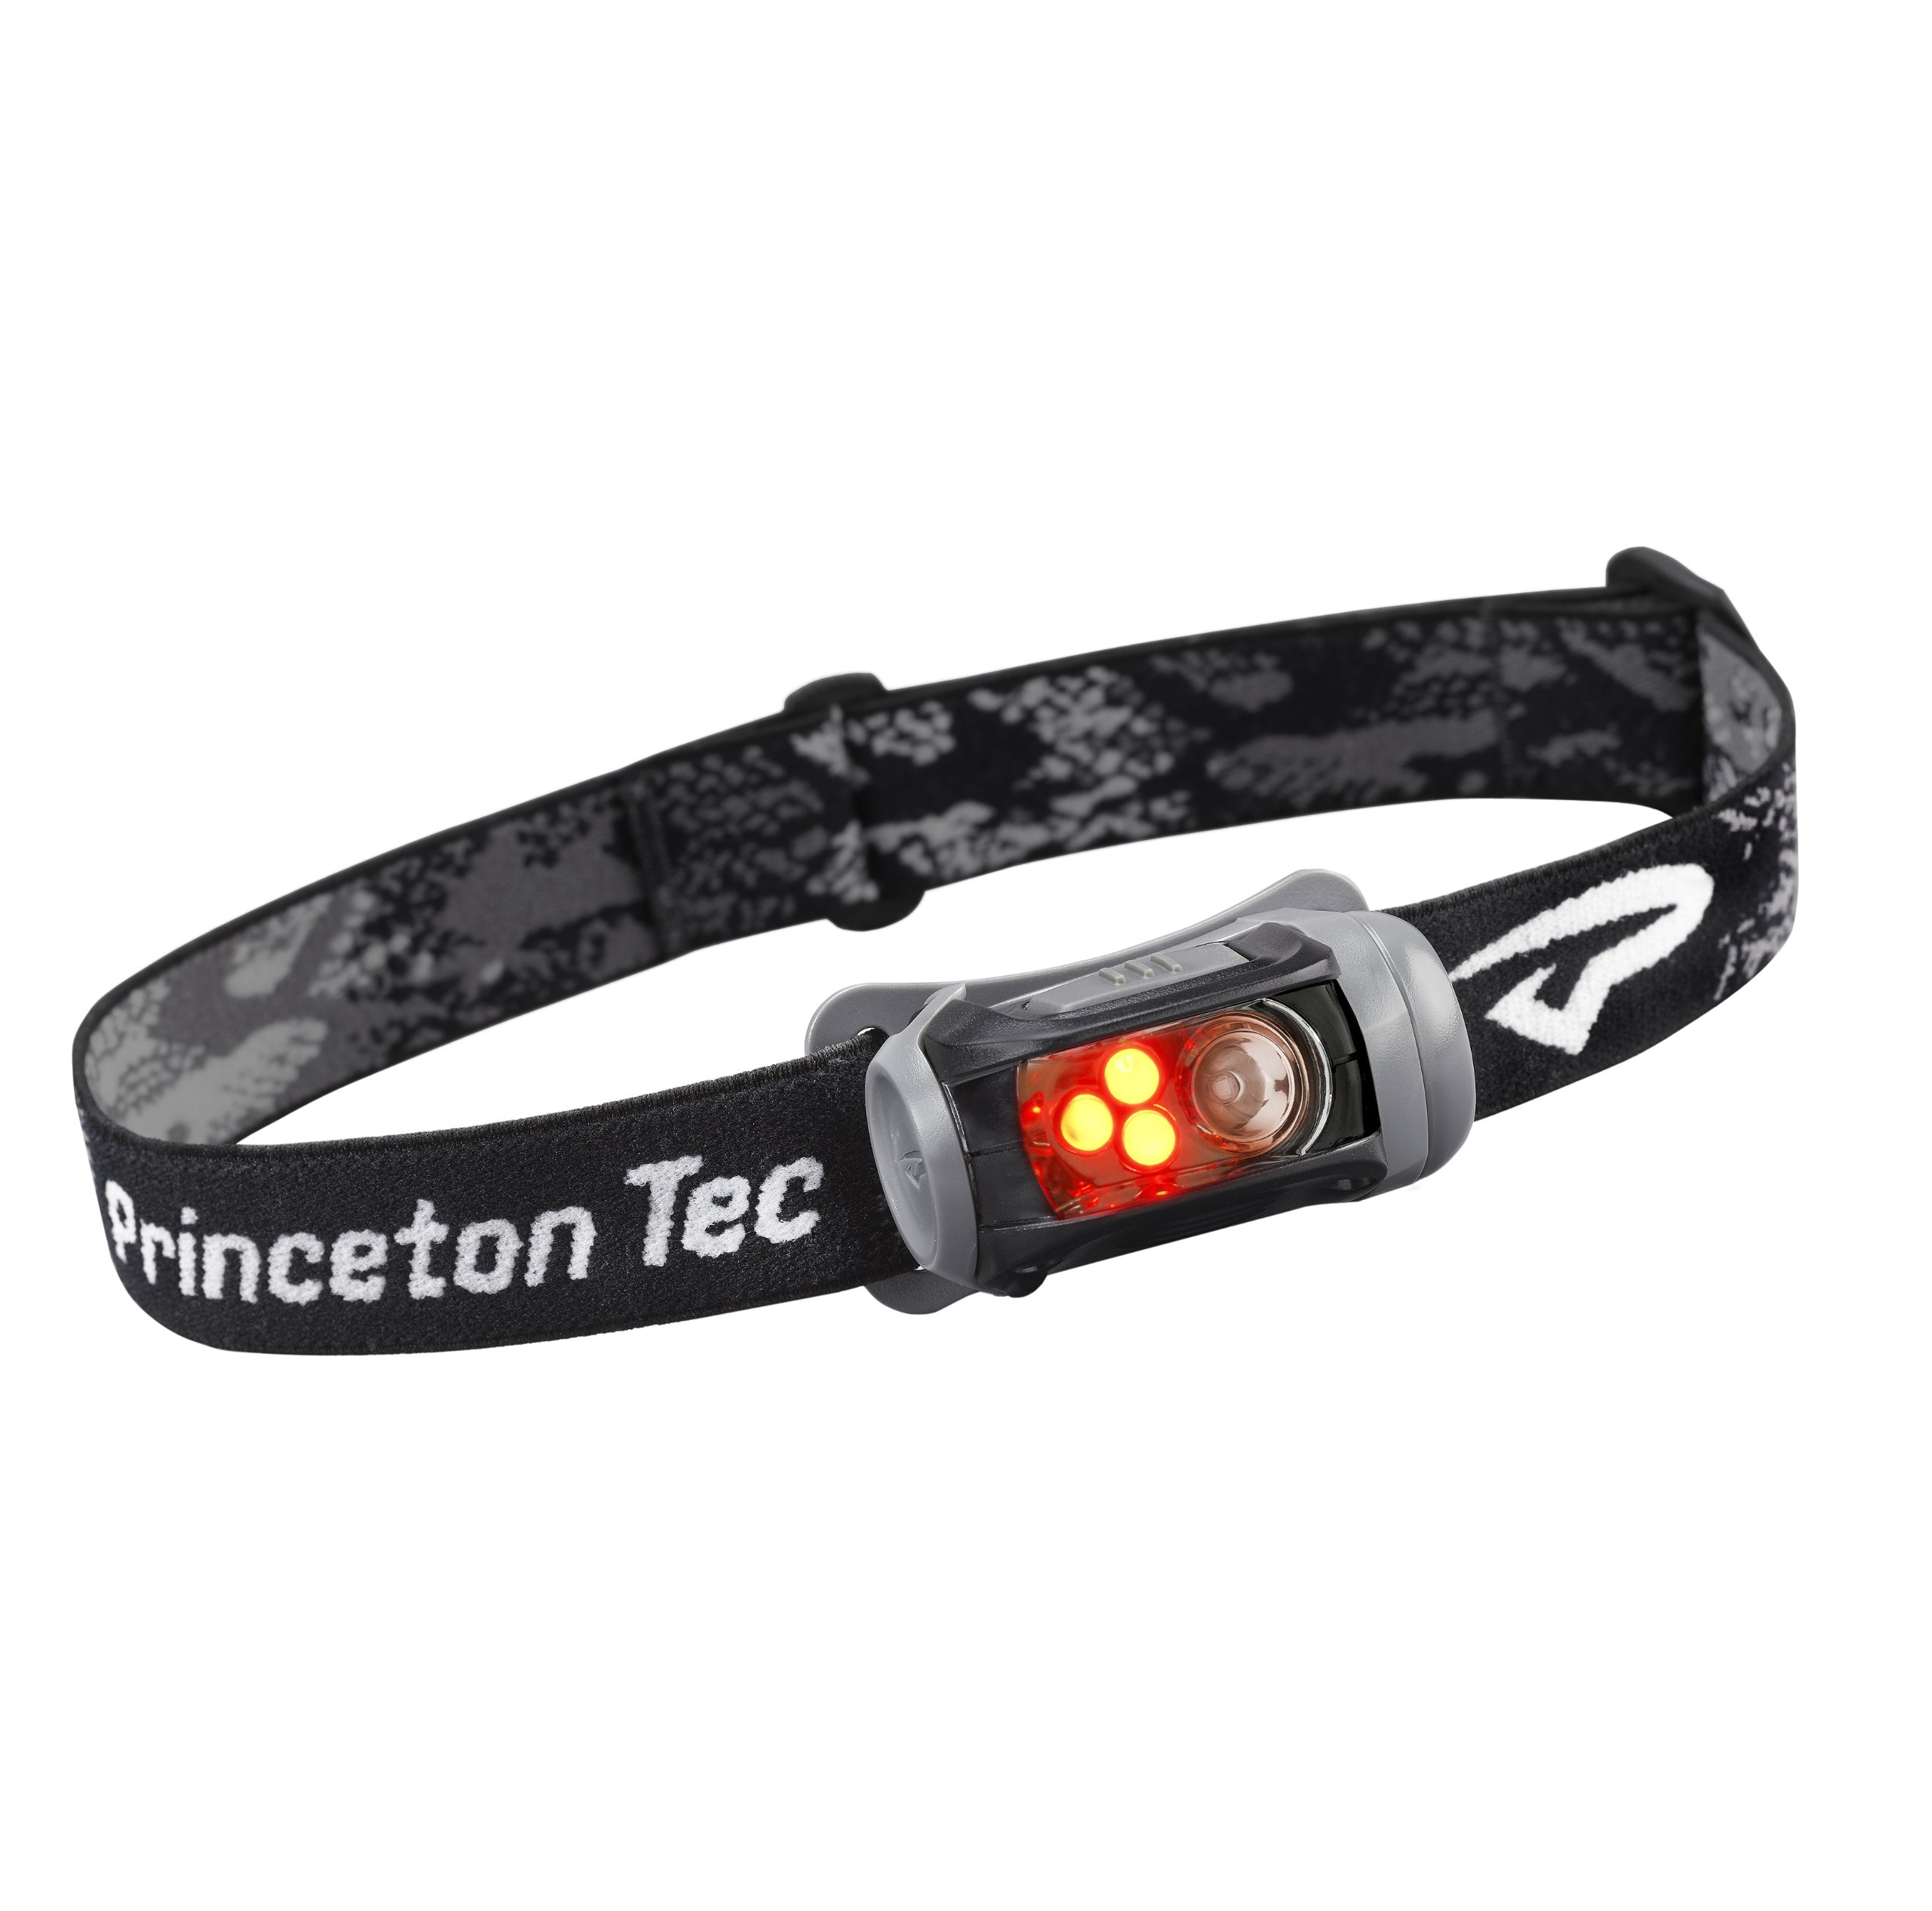 Princeton Tec Remix LED Headlamp (100 Lumens, Black w/Red LED's)